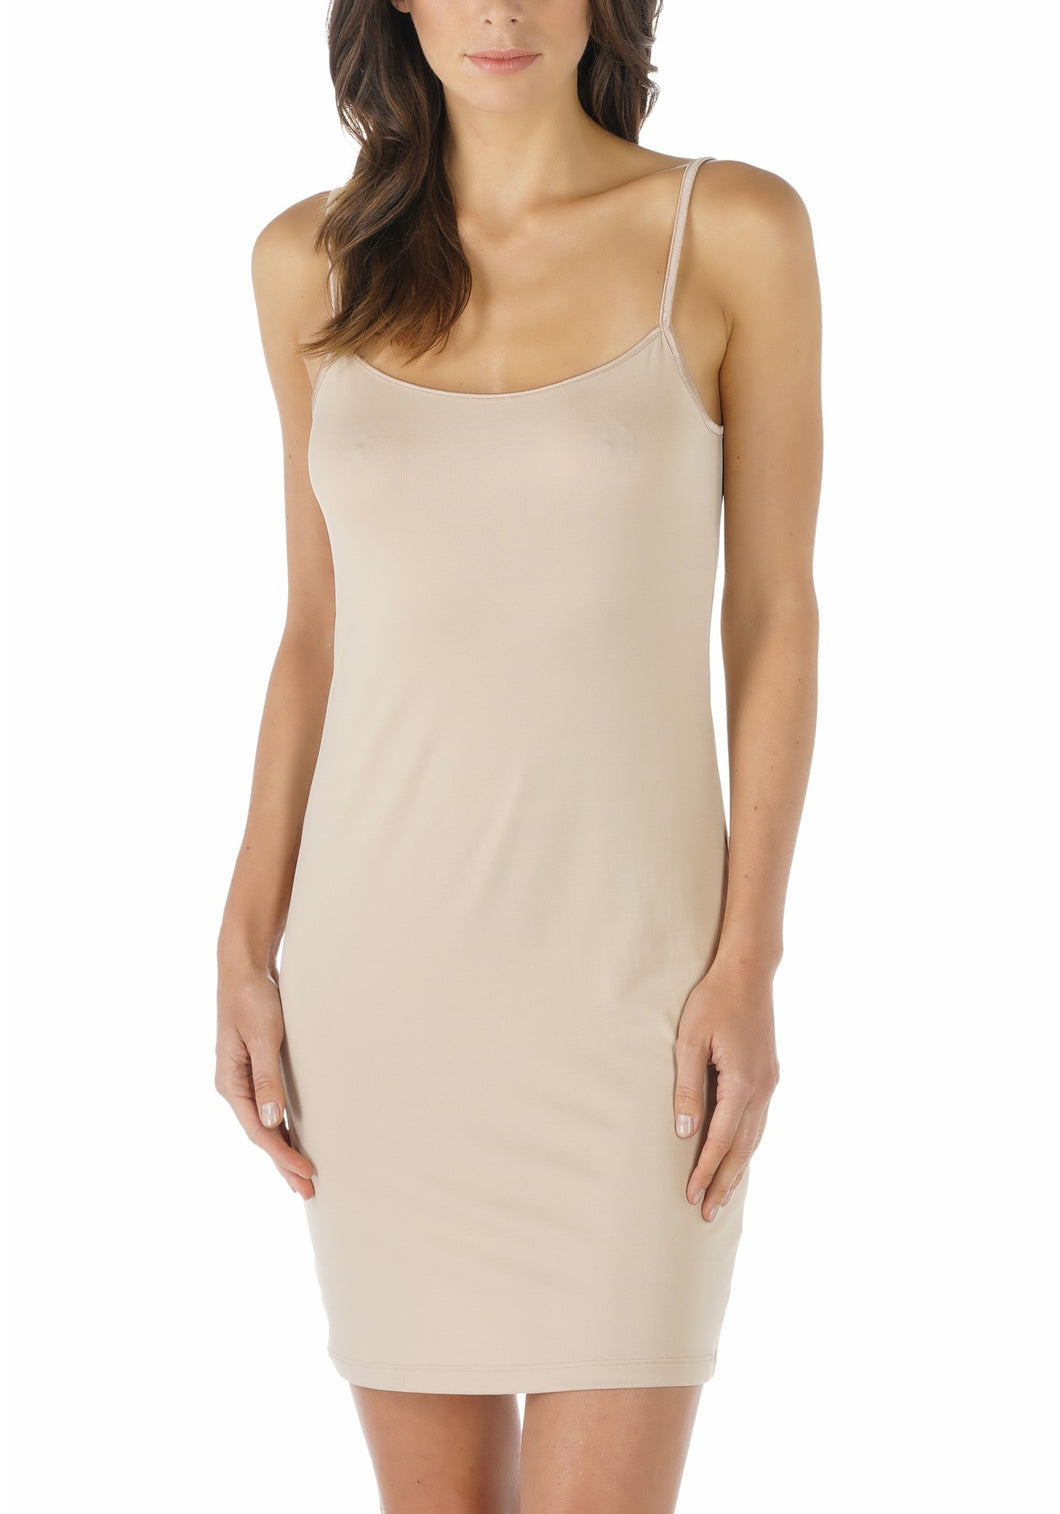 Body-Dress 55205 376 cream tan